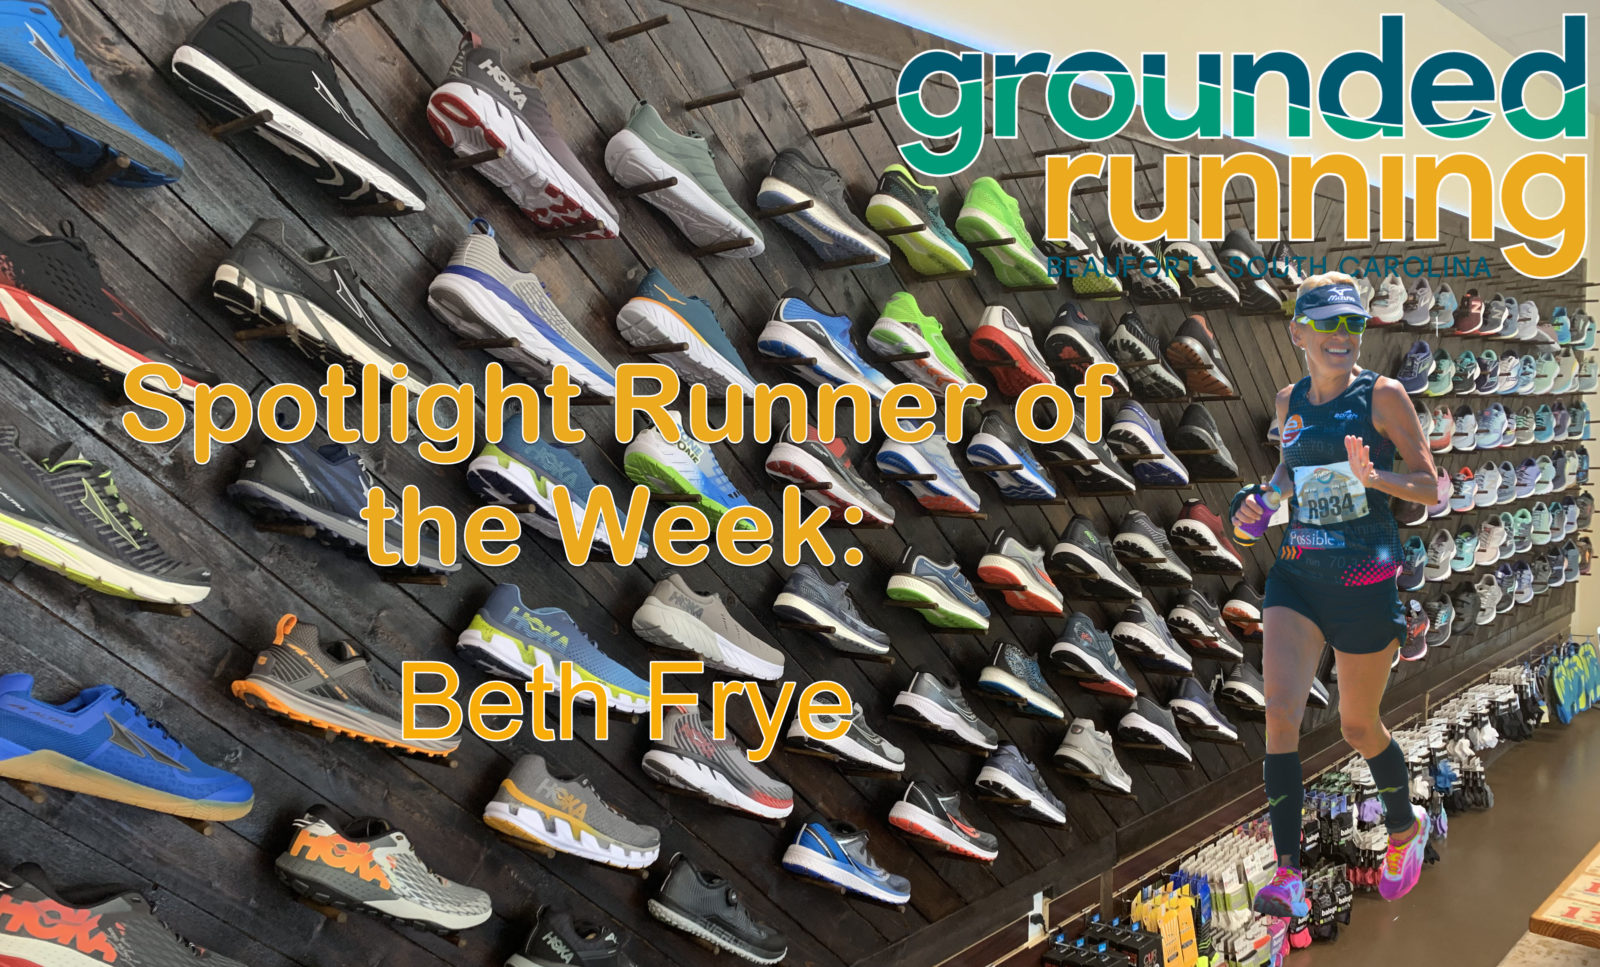 Beth Frye - Grounded Running Spotlight Runner of the Week